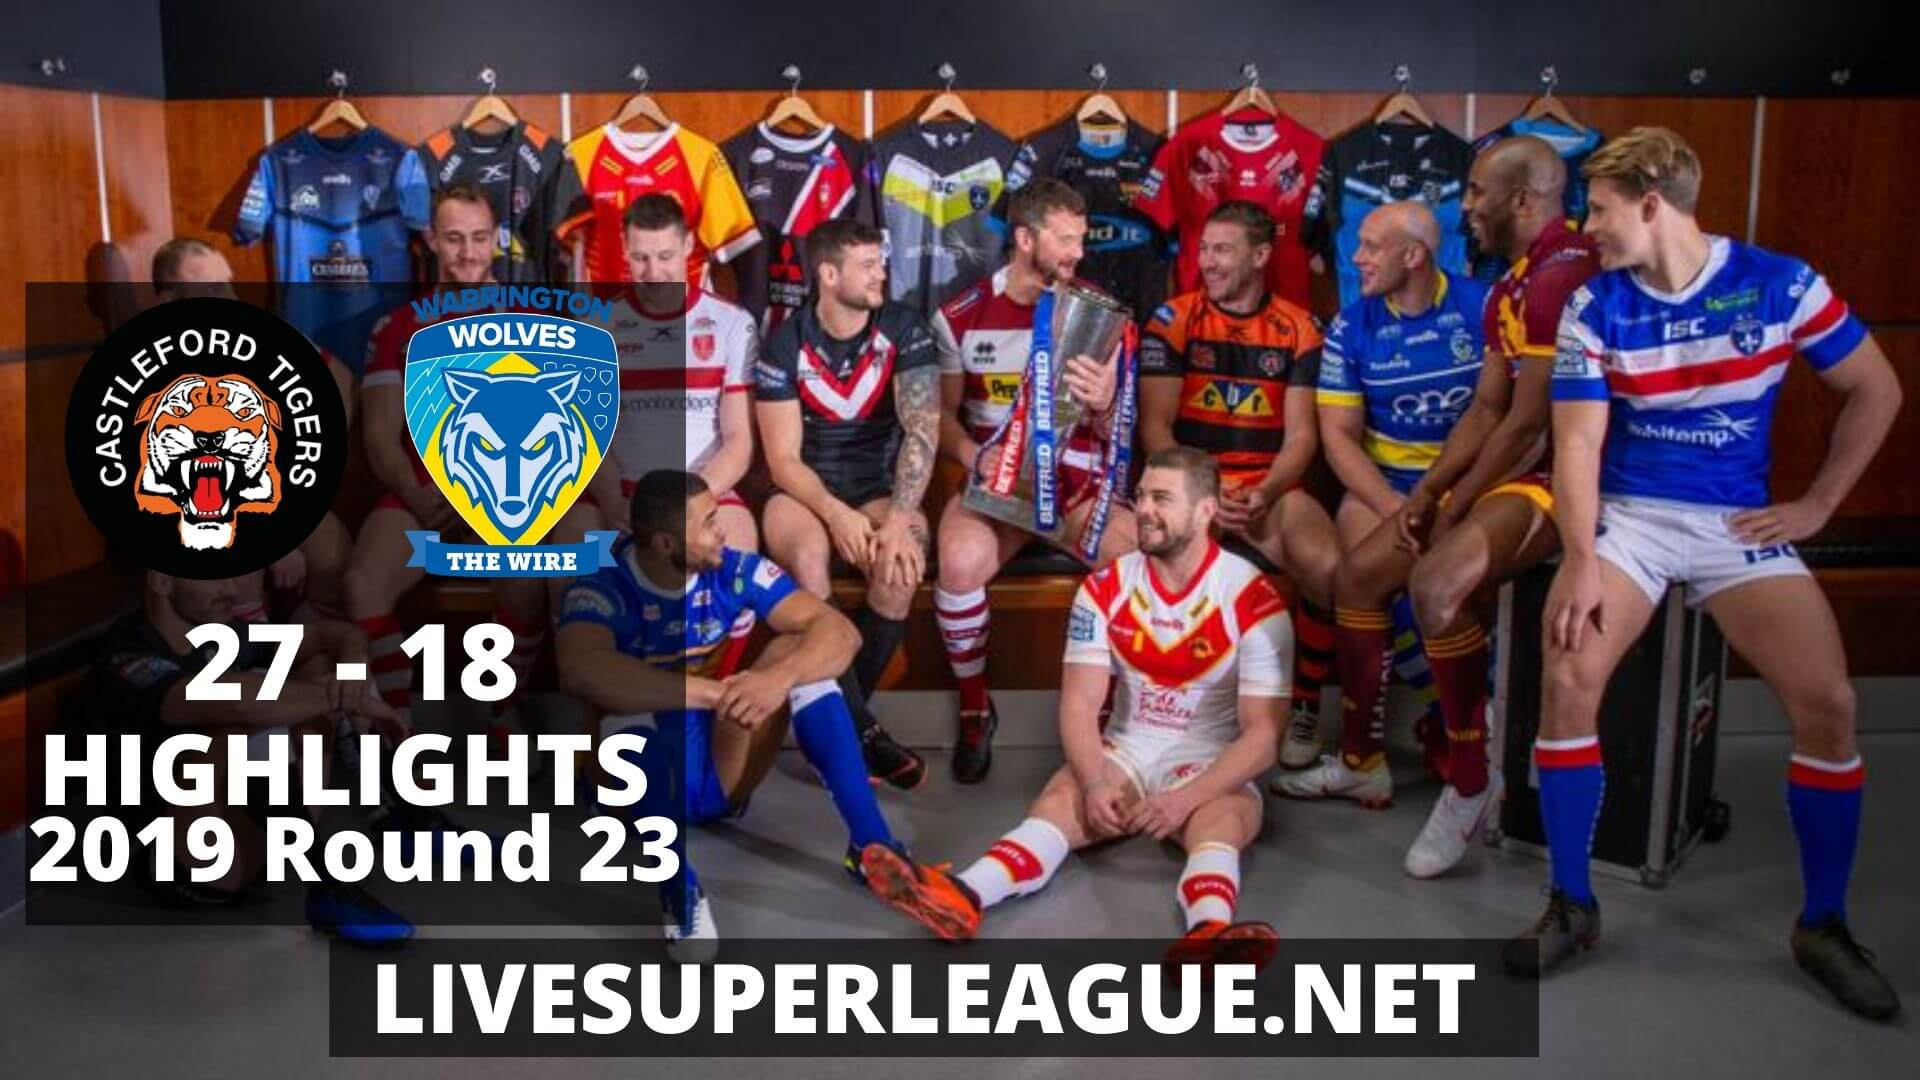 Castleford Tigers Vs Warrington Wolves Highlights 2019 Round 23